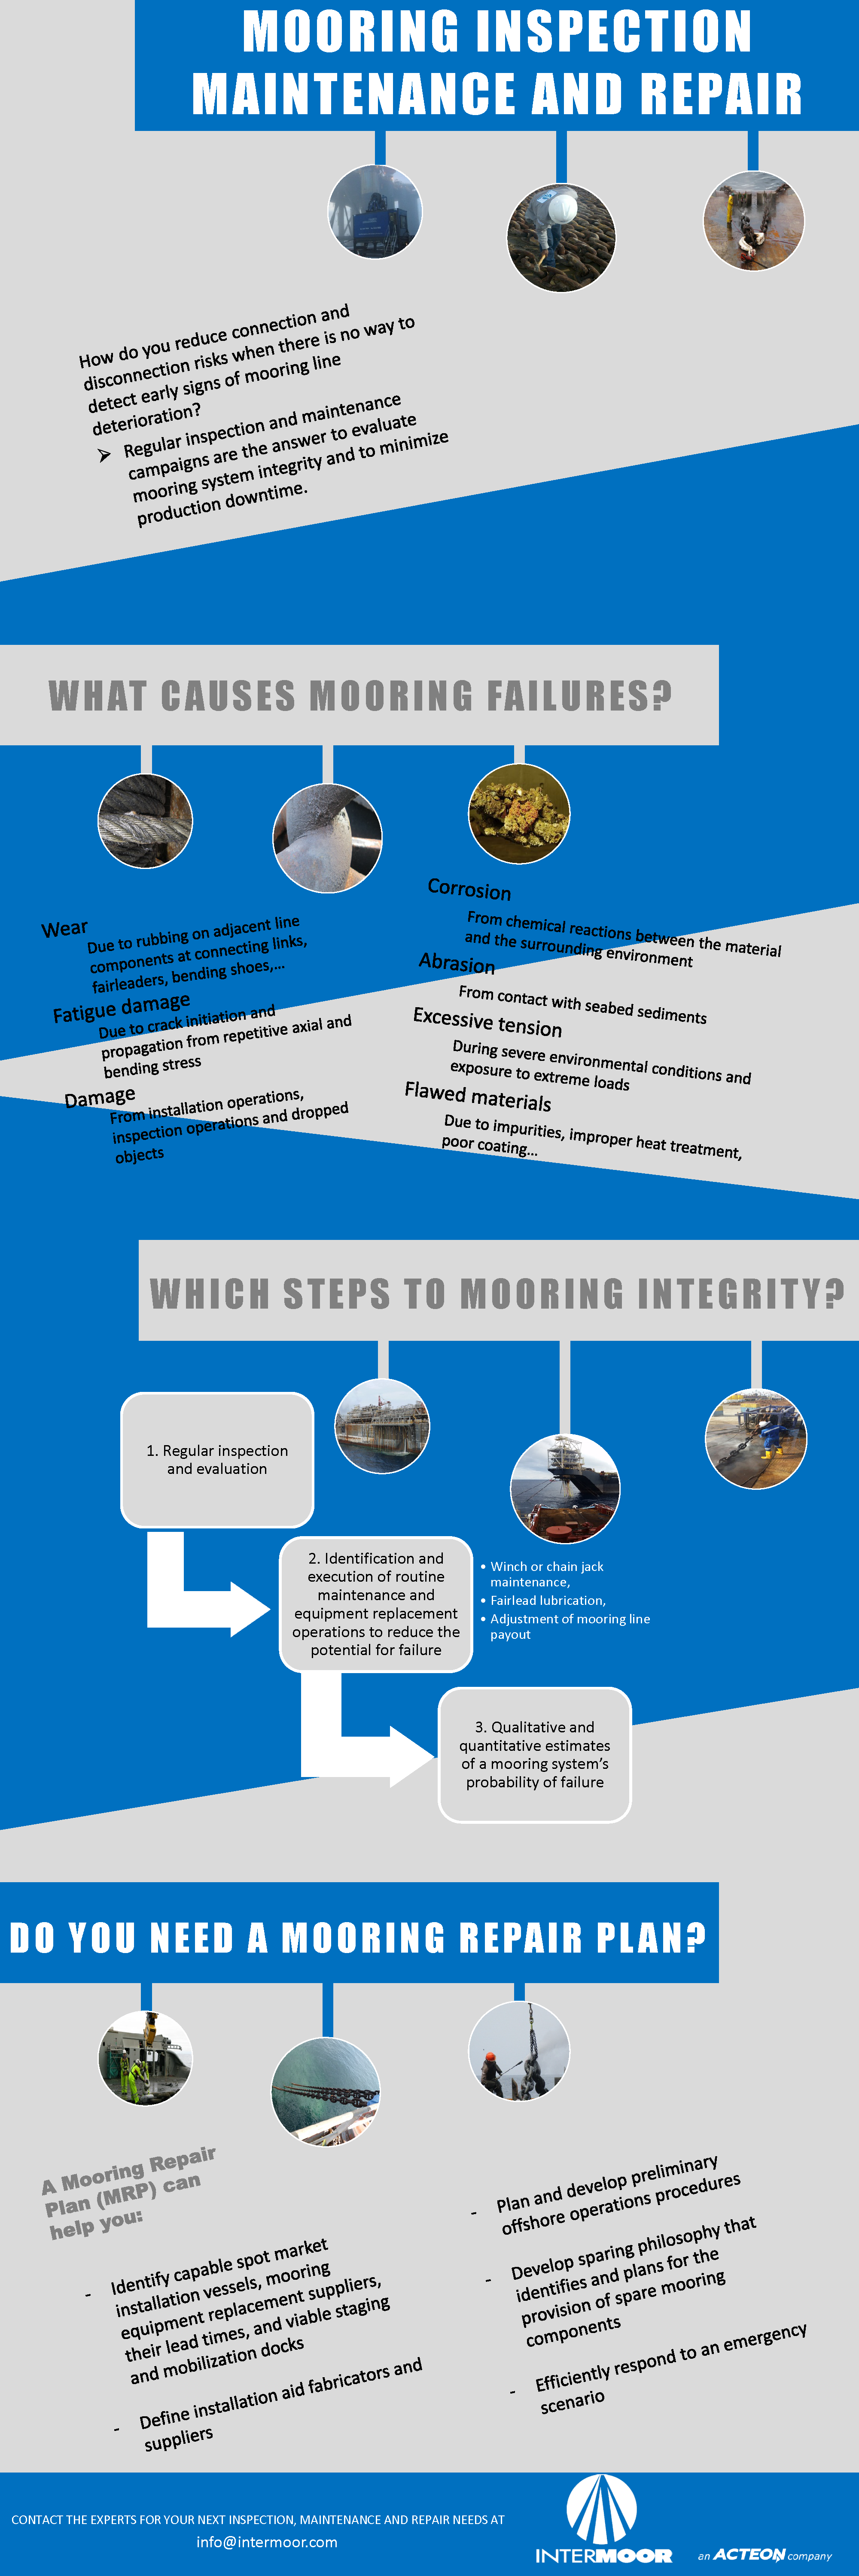 IMR Infographic